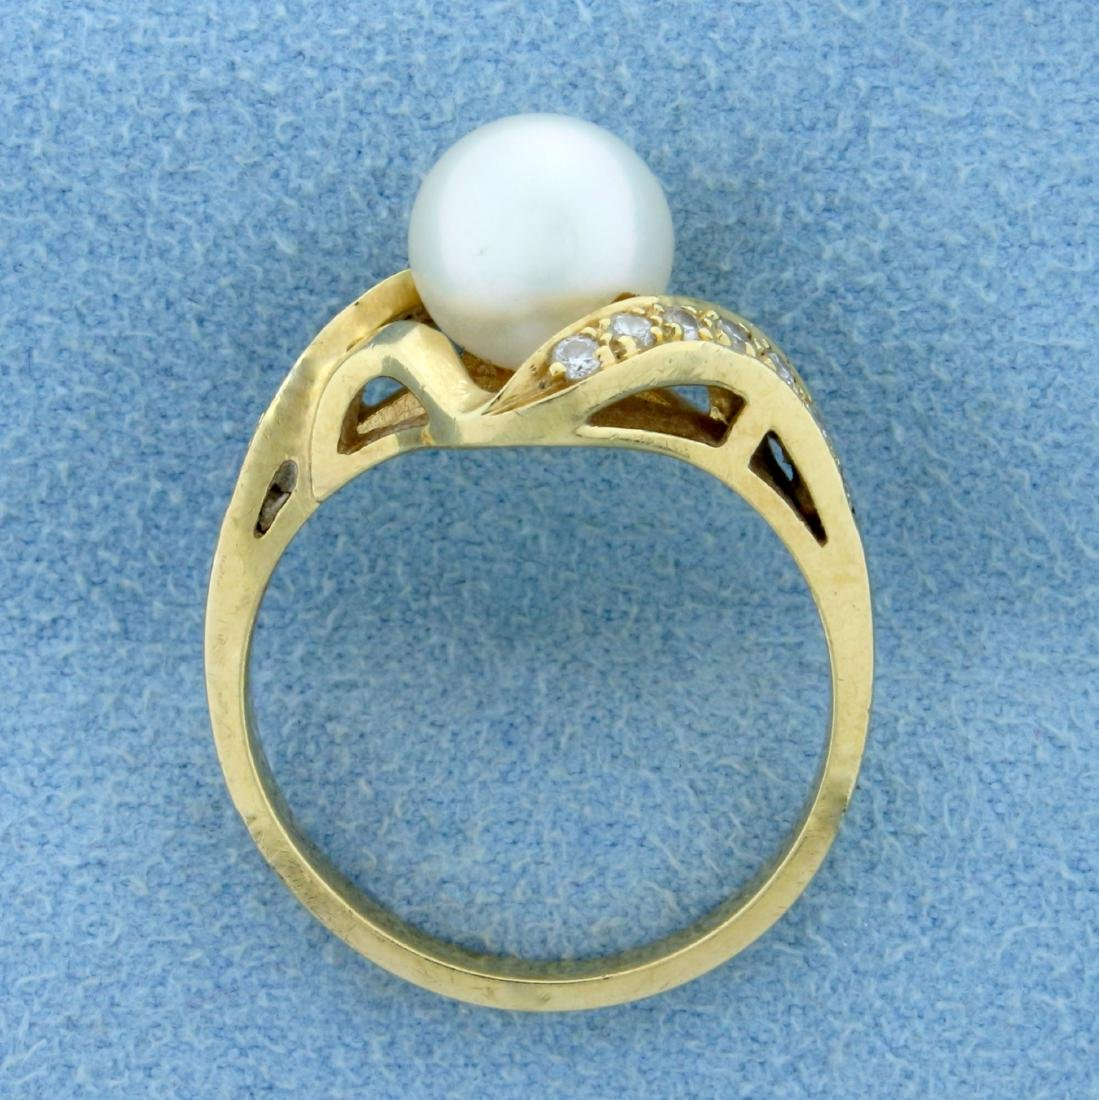 8mm Cultured Akoya Pearl and Diamond Ring in 14K Yellow - 3